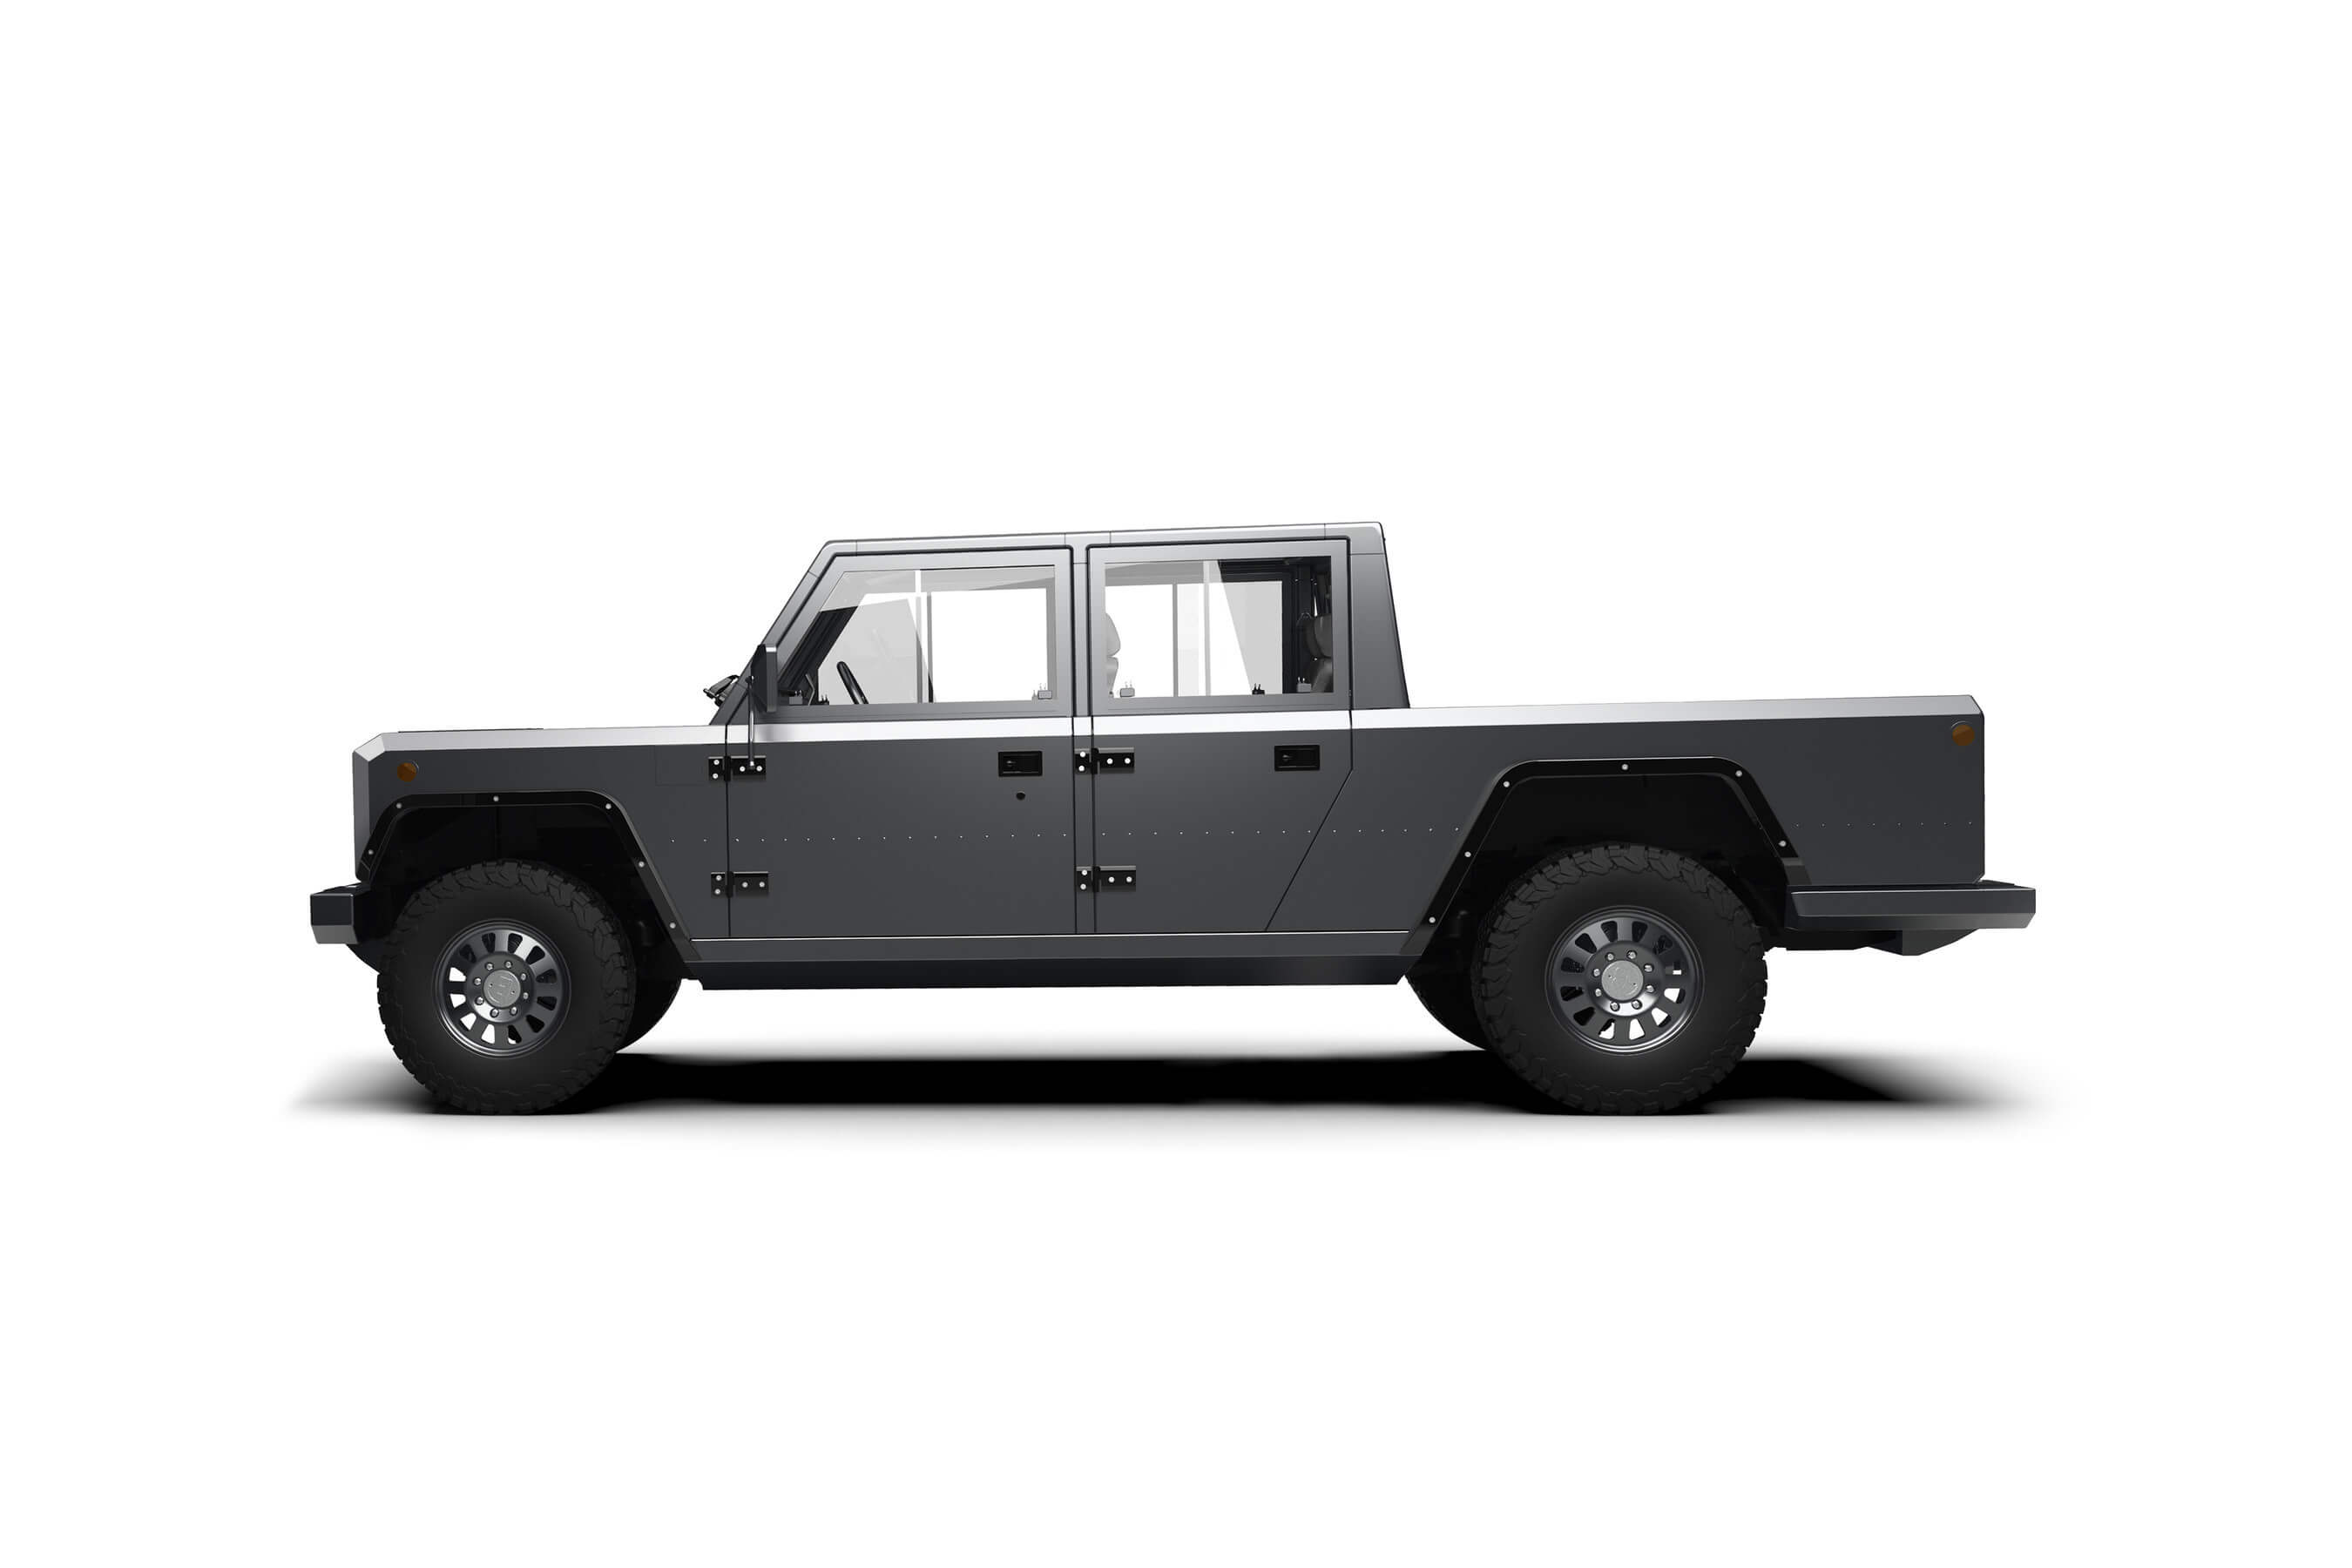 Bollinger Motors Has Unveiled A Preview Of The Company S Newest Vehicle Design An All Electric Wheel Drive B2 Pickup Truck